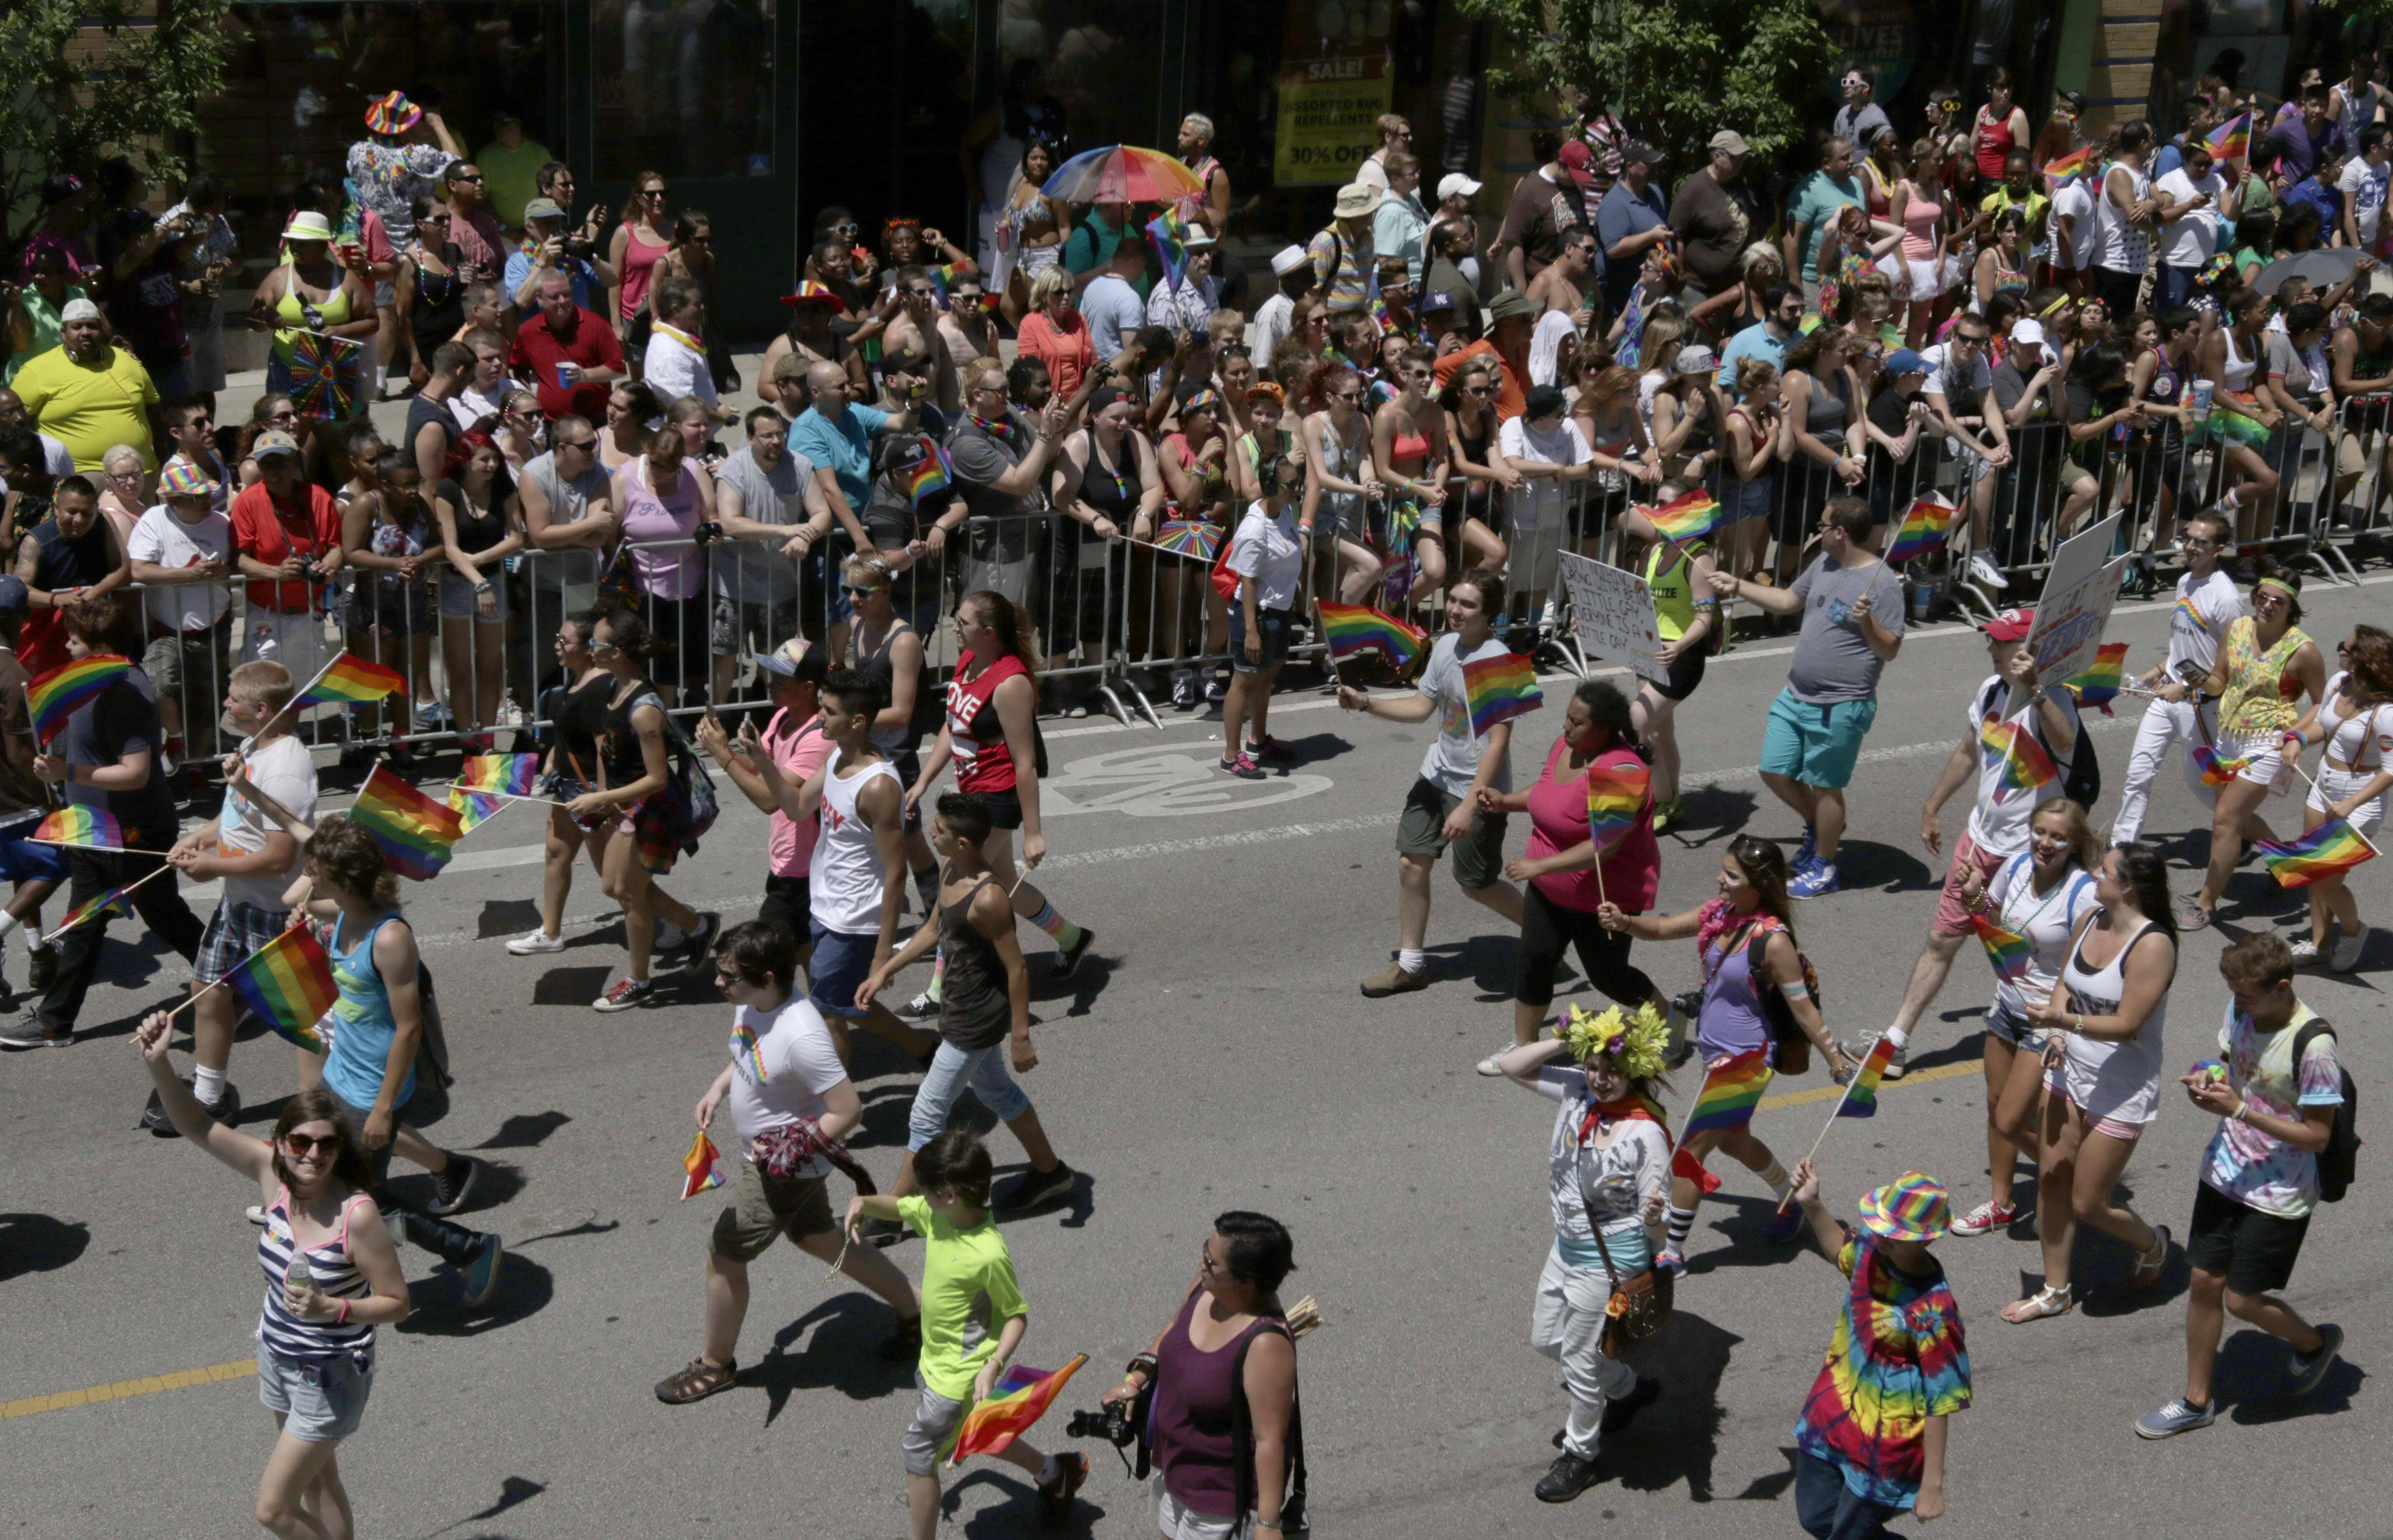 The crowd cheers as the parade moves down Broadway Street during the Gay Pride Parade on Sunday, June 29, 2014 in Chicago. As many as 1 million people were expected to pack Chicago streets Sunday for the first Gay Pride Parade since Illinois legalized gay marriage last month.